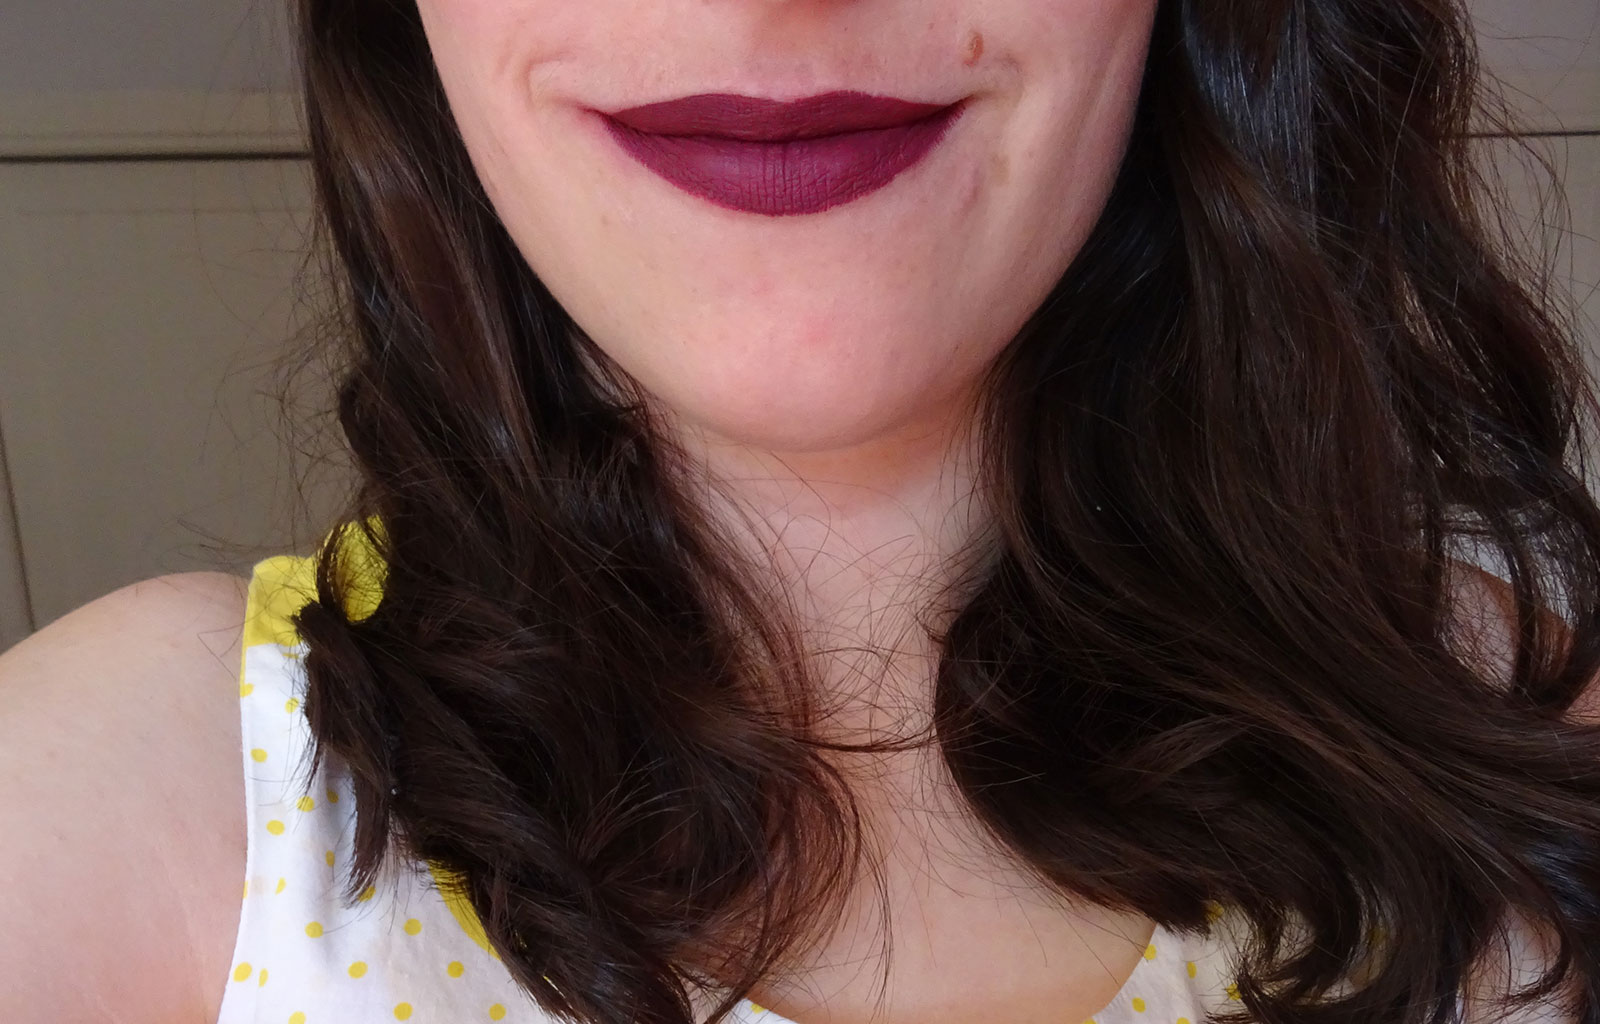 Longstay Liquid Matte Lipstick Cookie's Make Up swatches 5 sorbet cassis